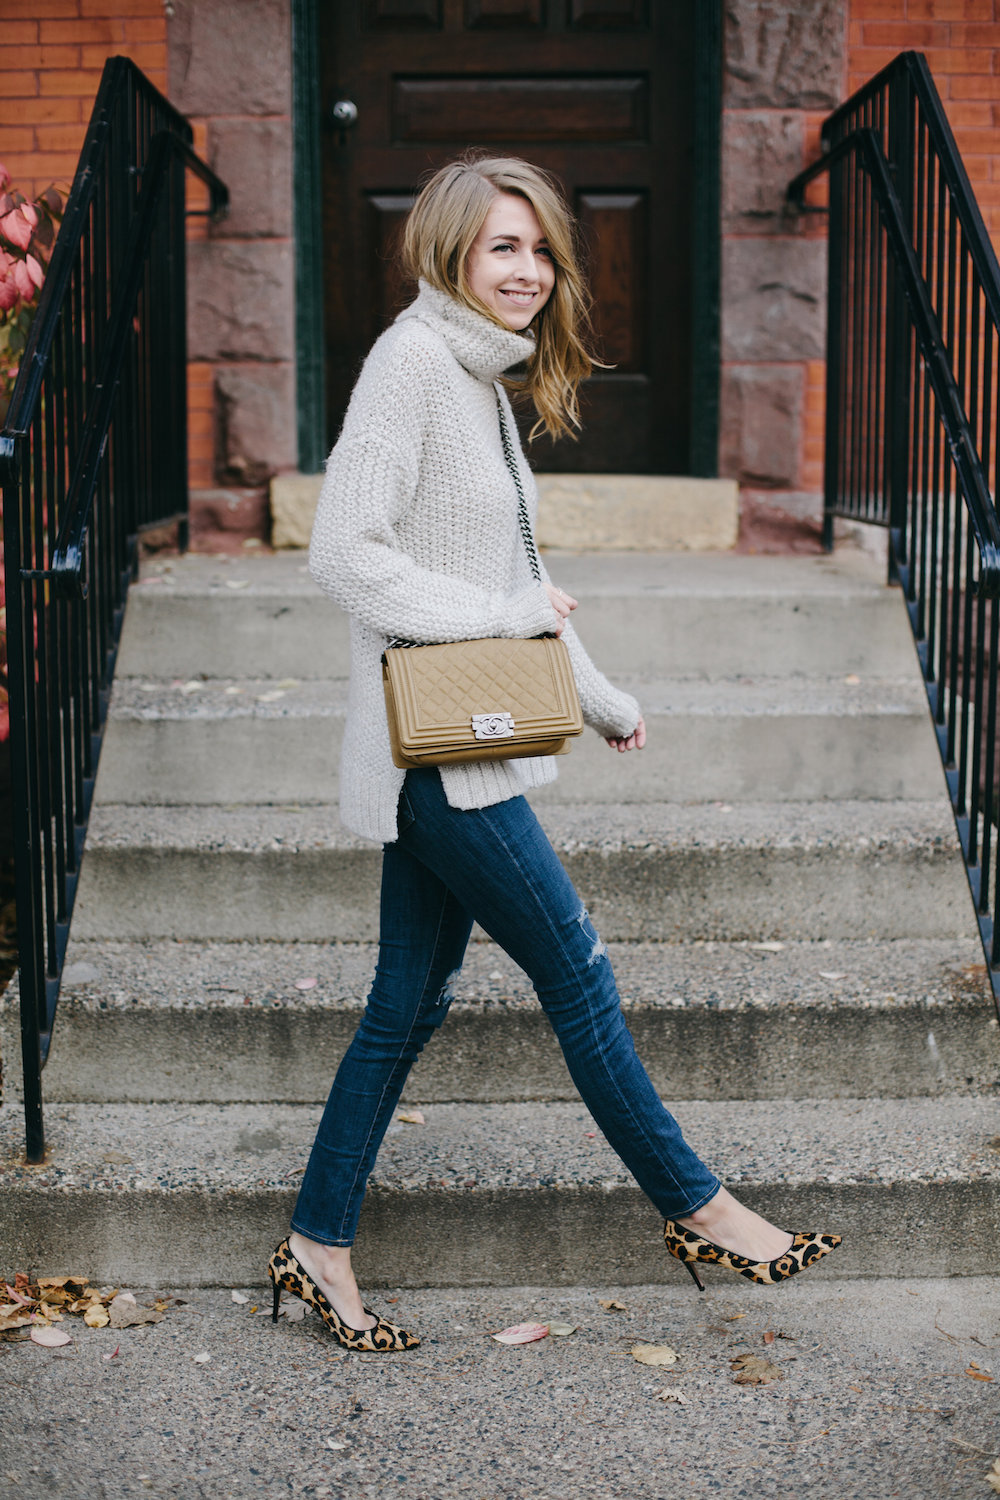 truelanne in Chanel via Bag Borrow Steal, Coach, and Abercrombie.jpg